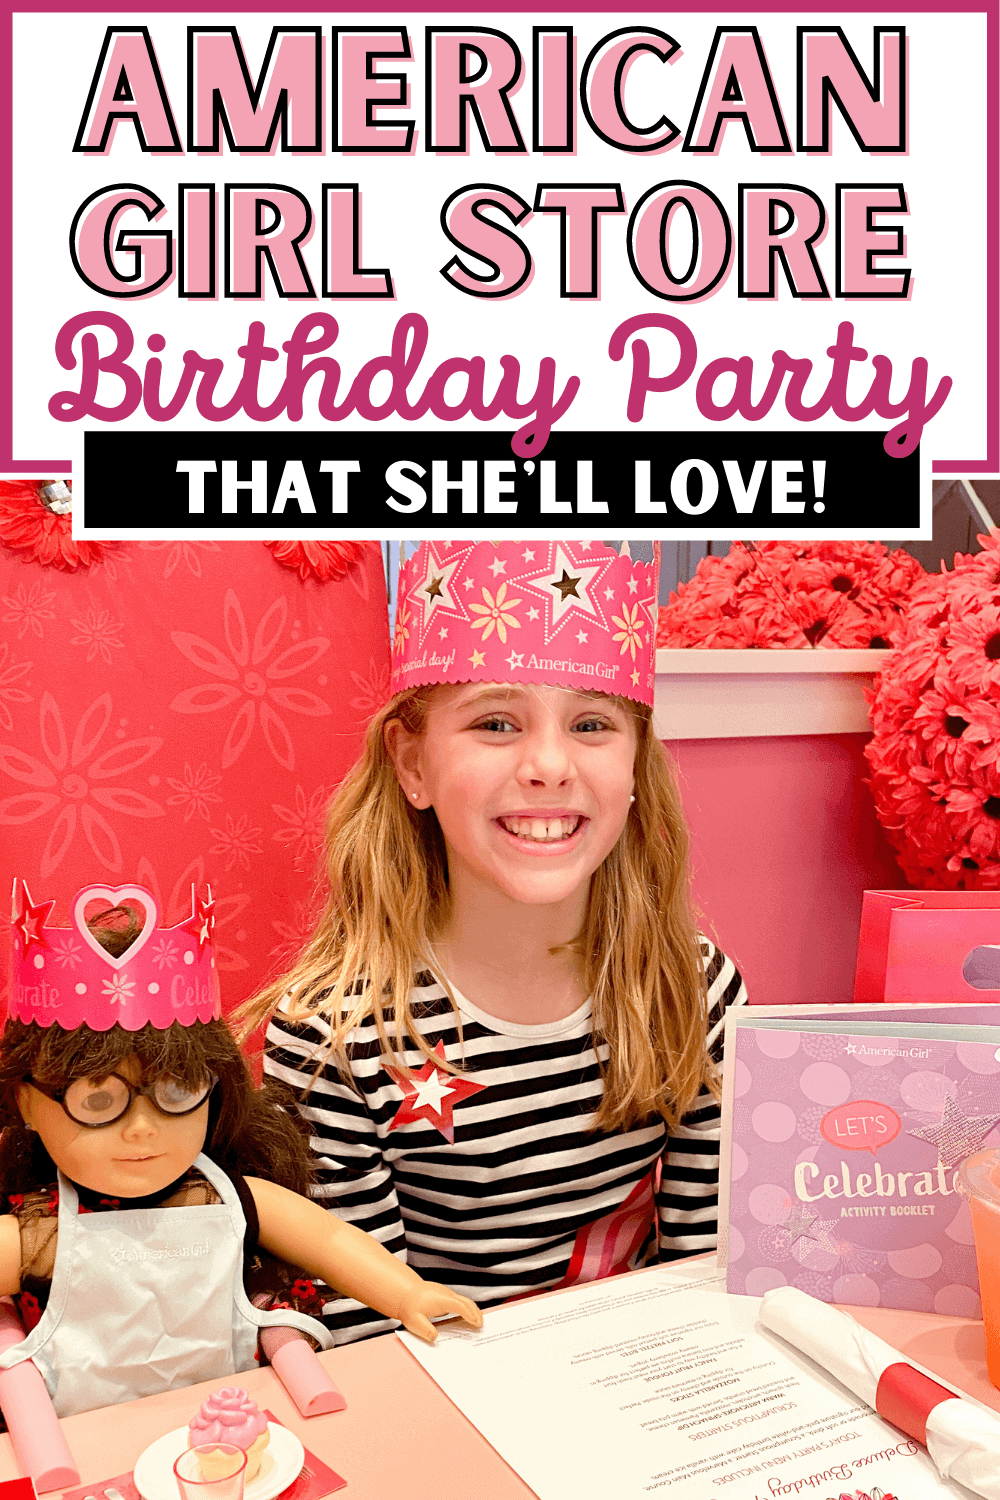 American Girl Store Birthday Party